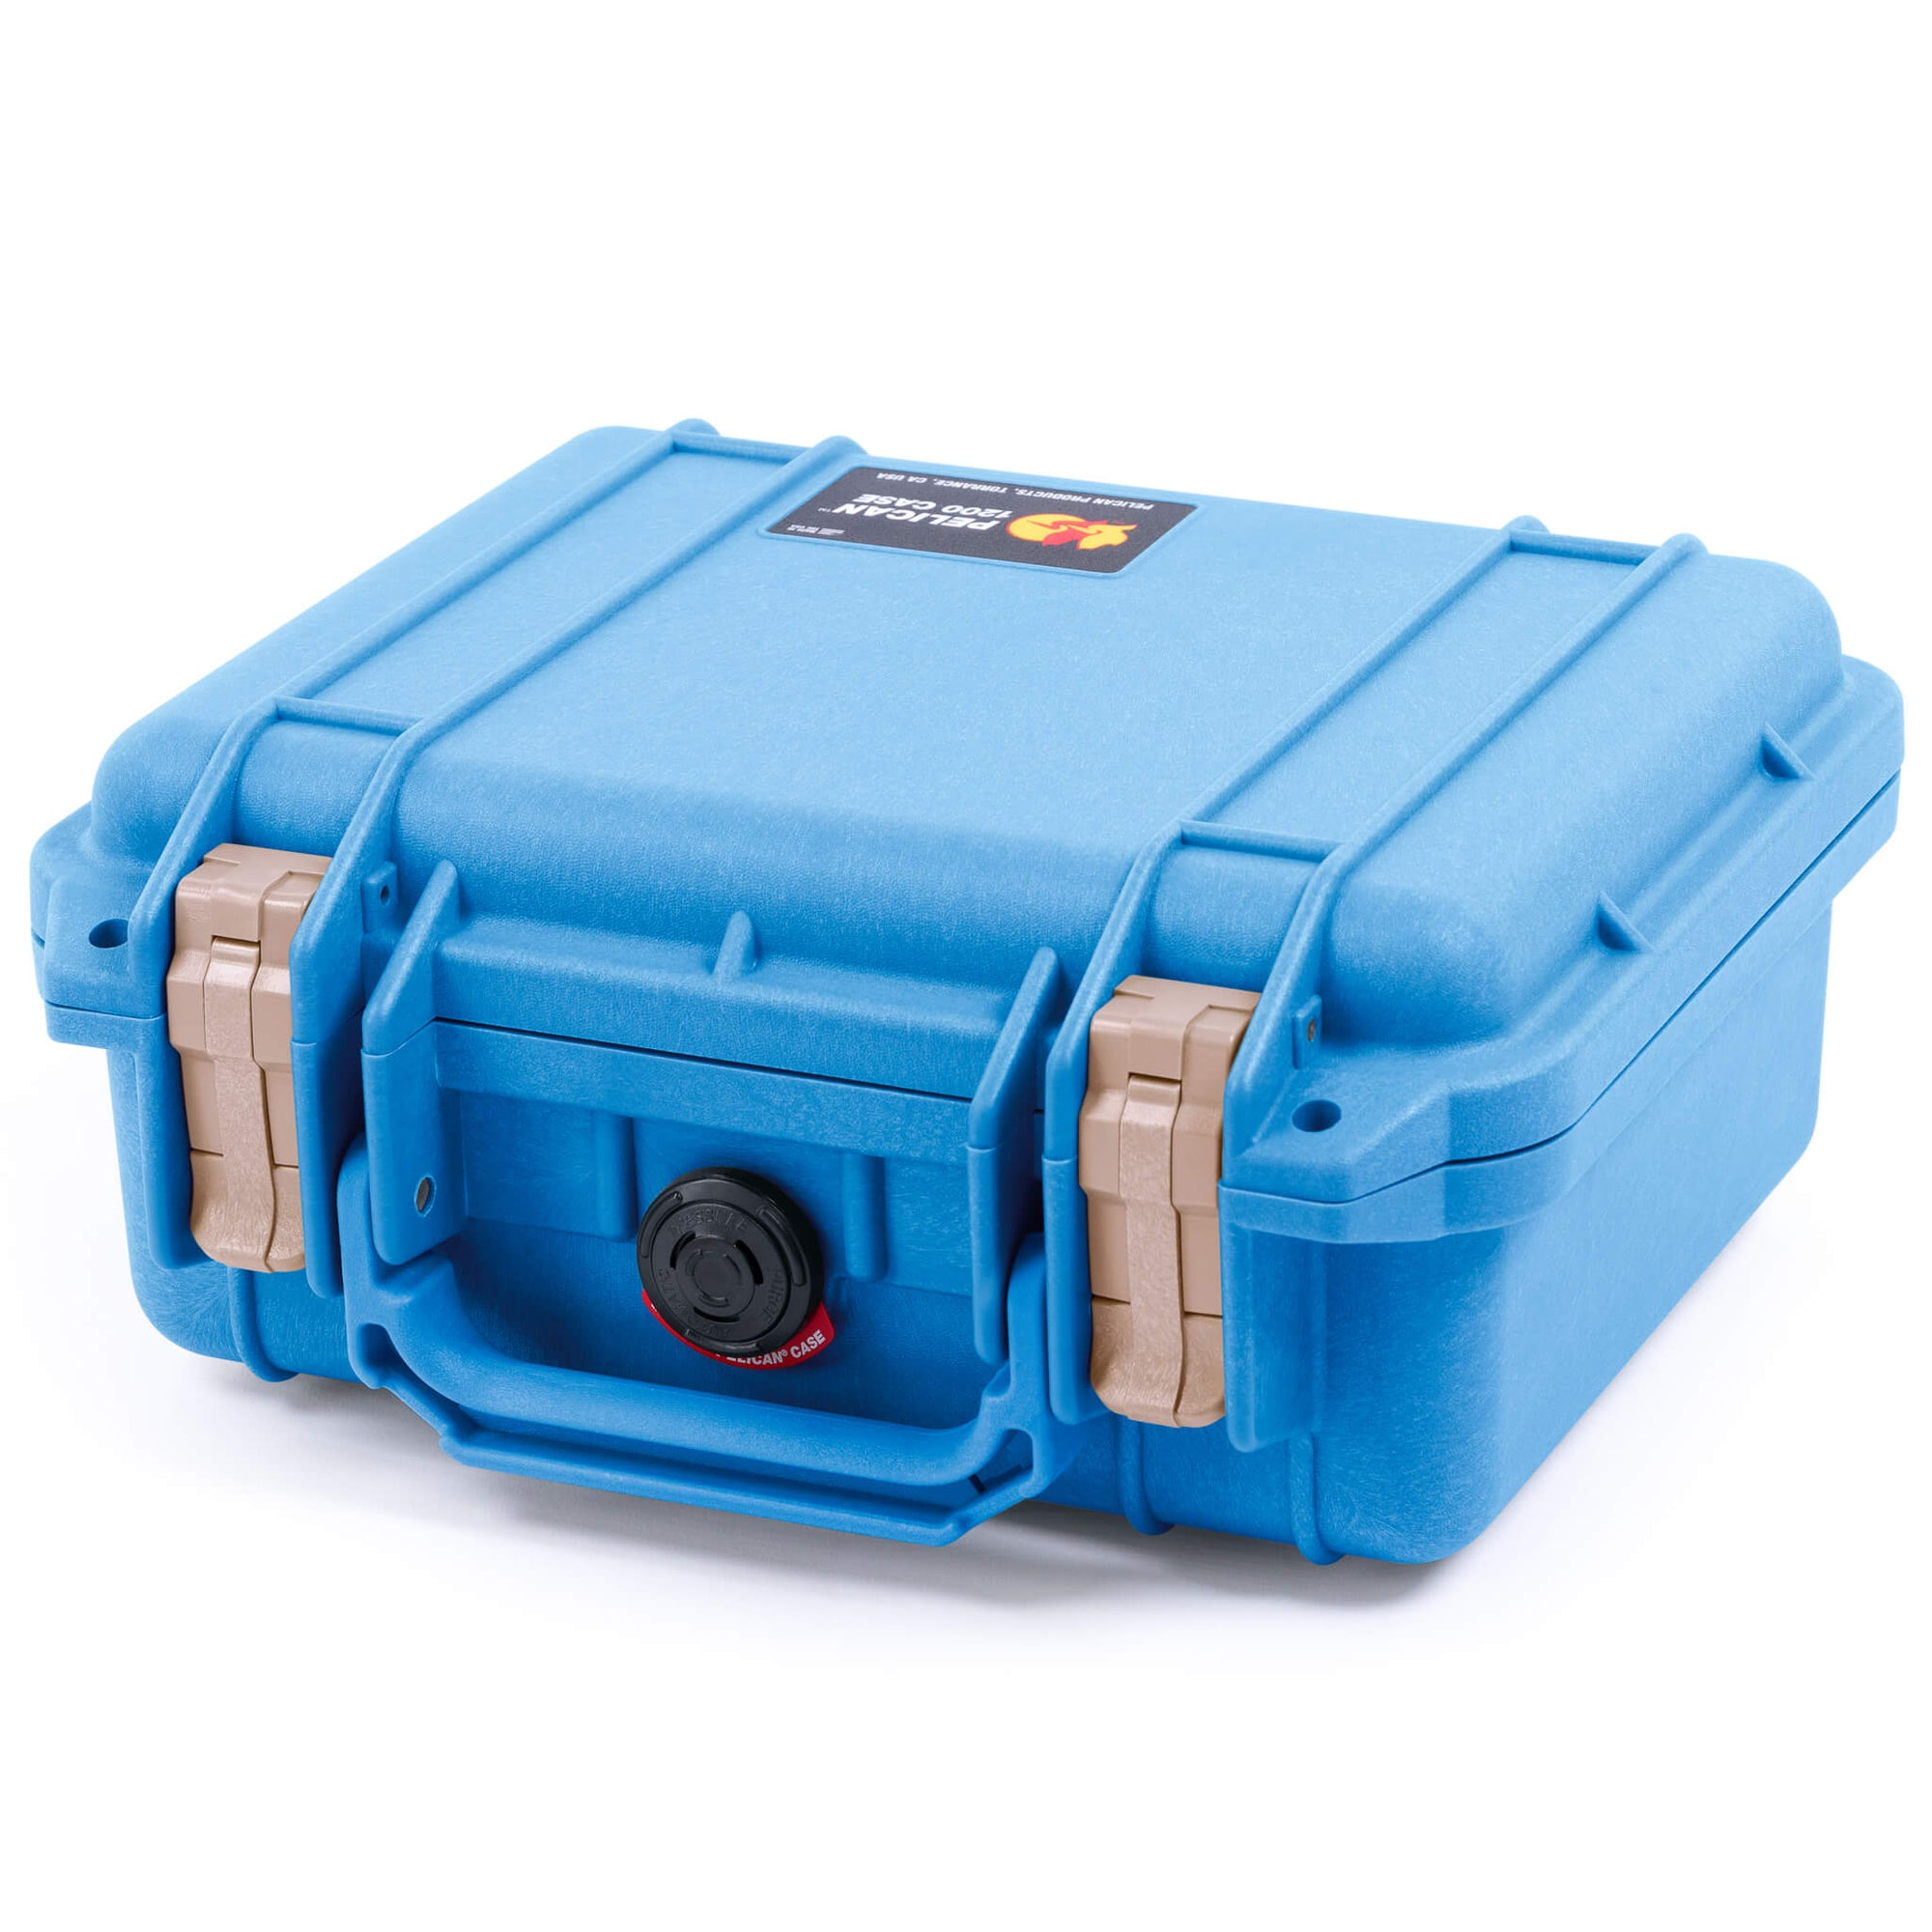 Pelican 1200 Case, Blue with Desert Tan Handle & Latches - Pelican Color Case